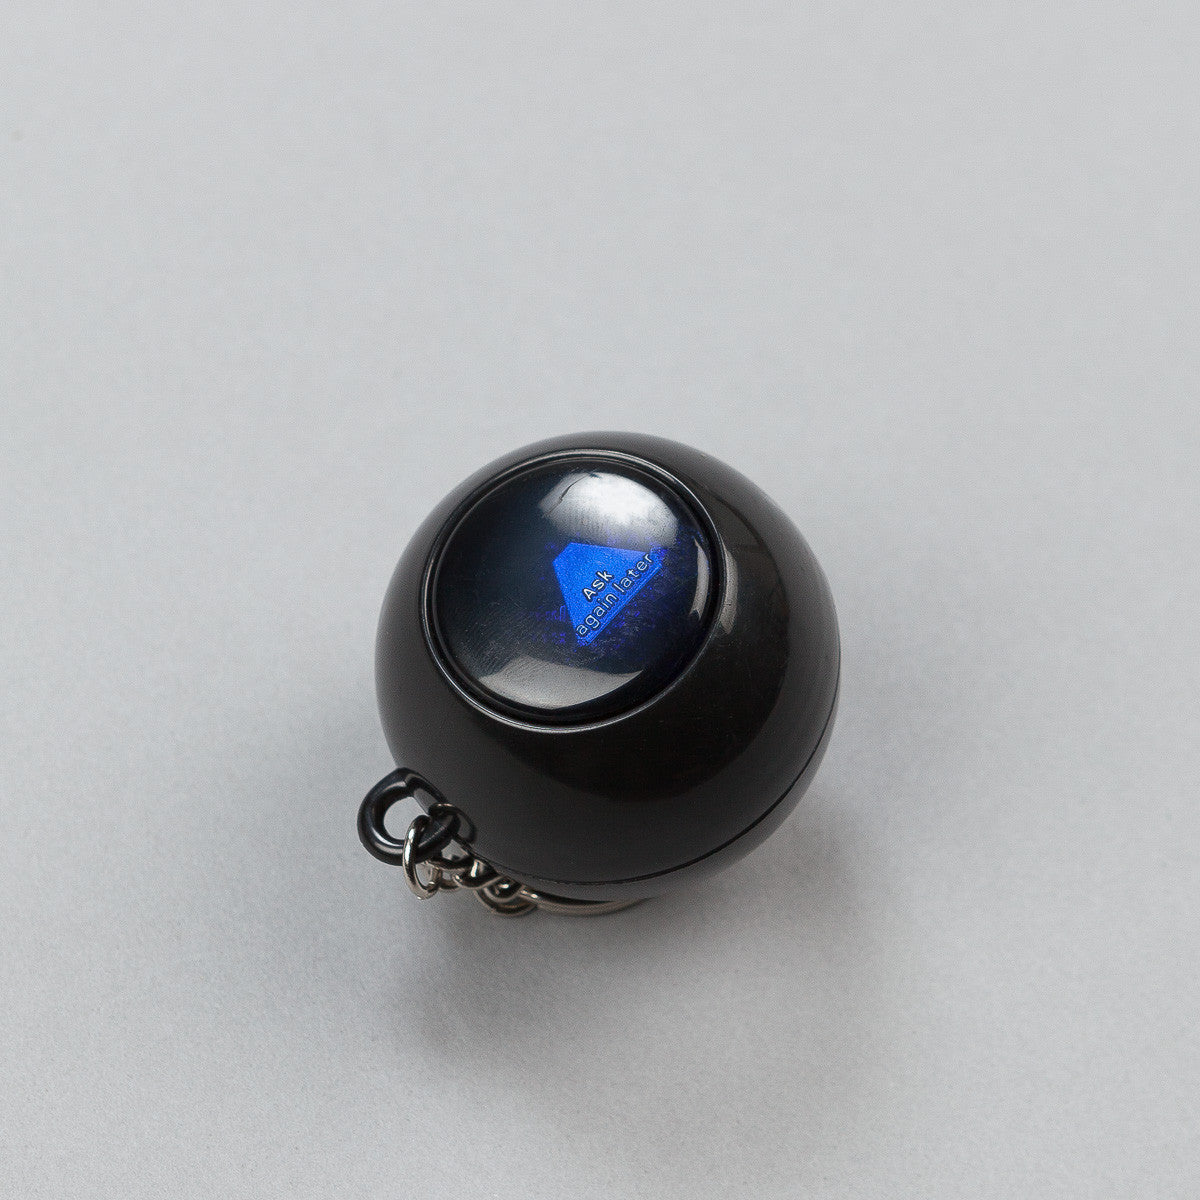 HUF 8 Ball Keychain - Black